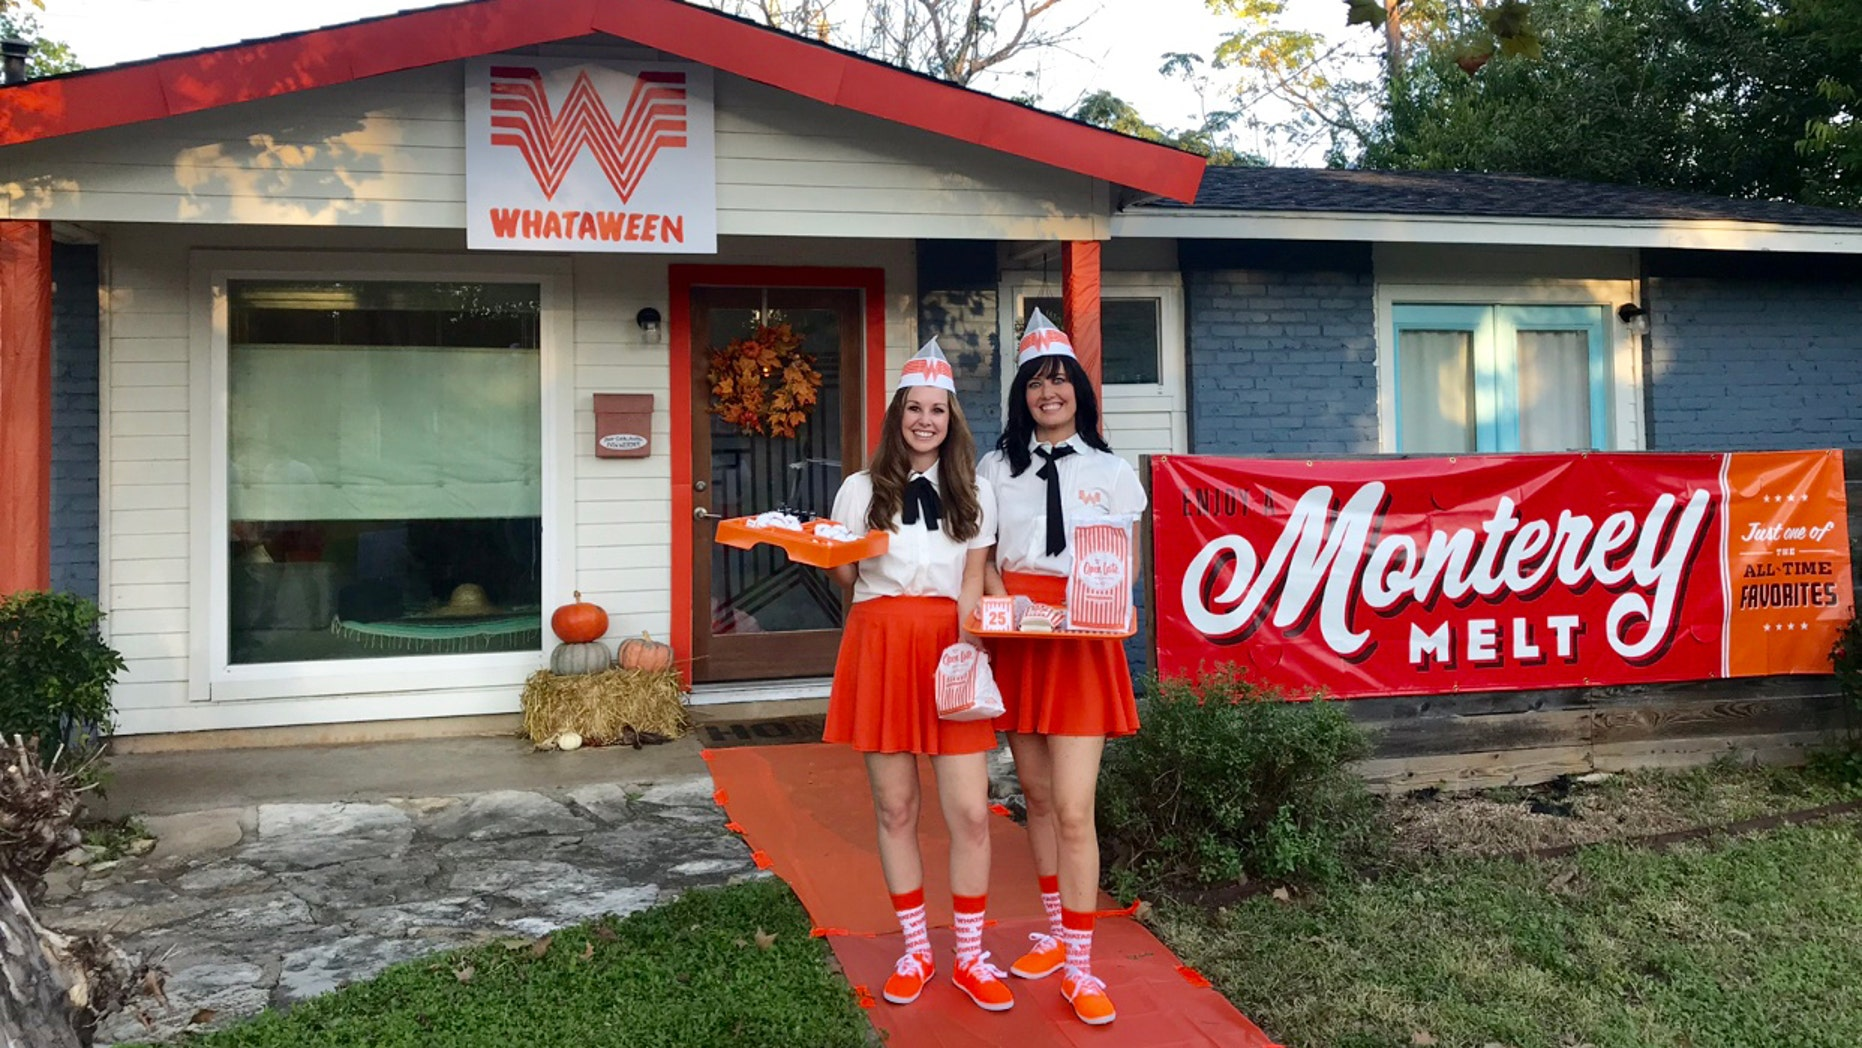 A Whataburger-loving couple in Texas went all out for Halloween and decorated their entire house after the fast food chain.